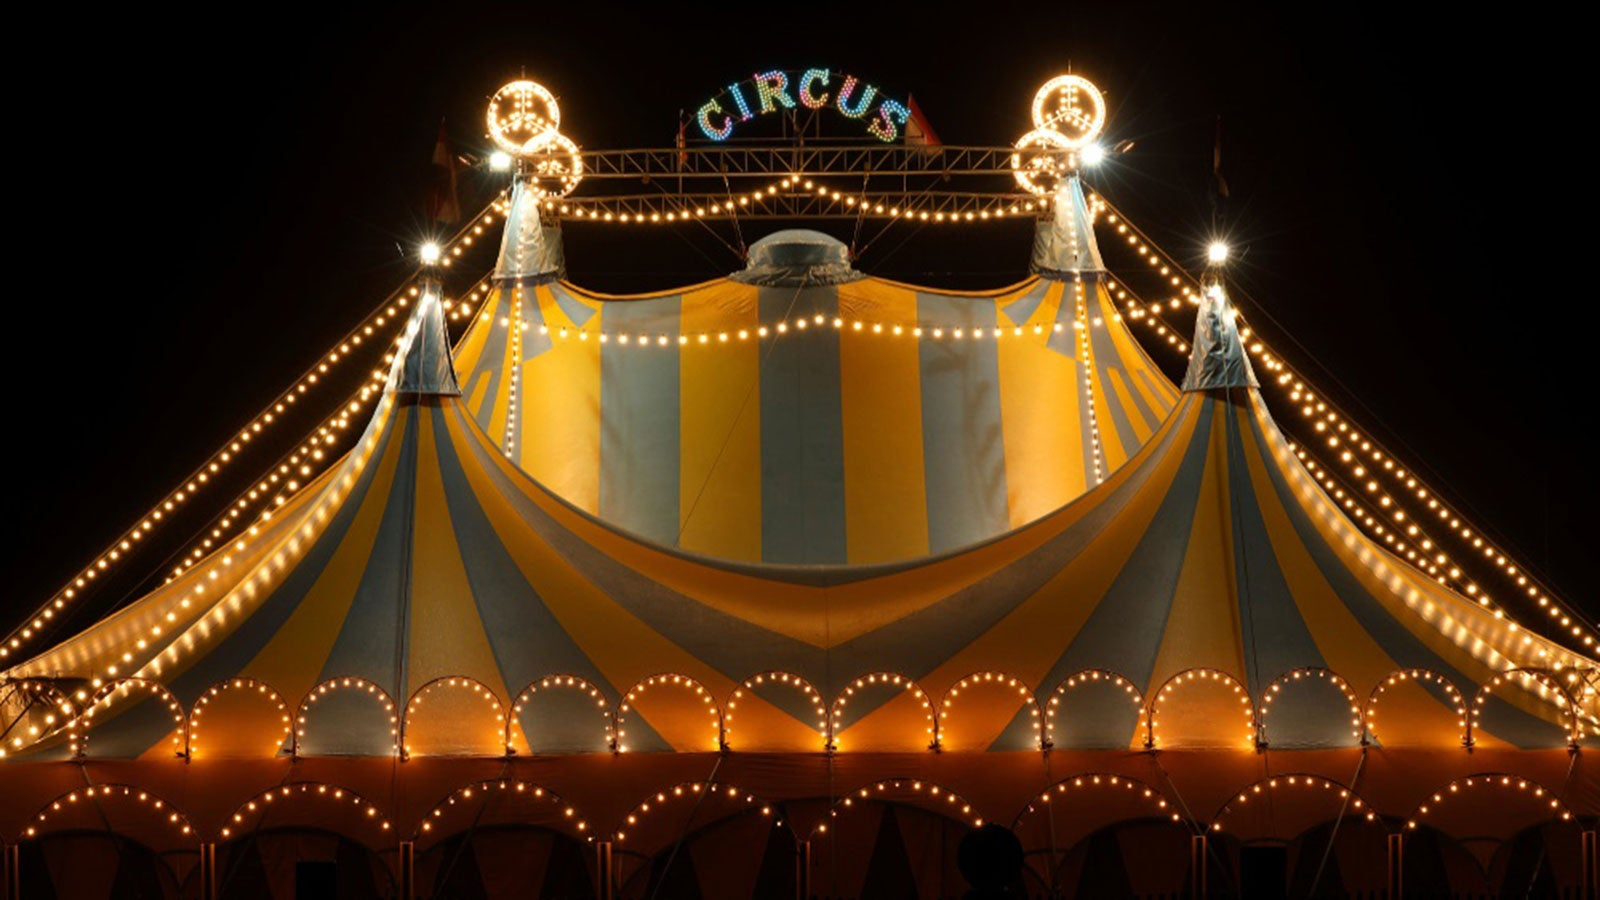 Blue and yellow circus tent with a light up circus sign on top at night